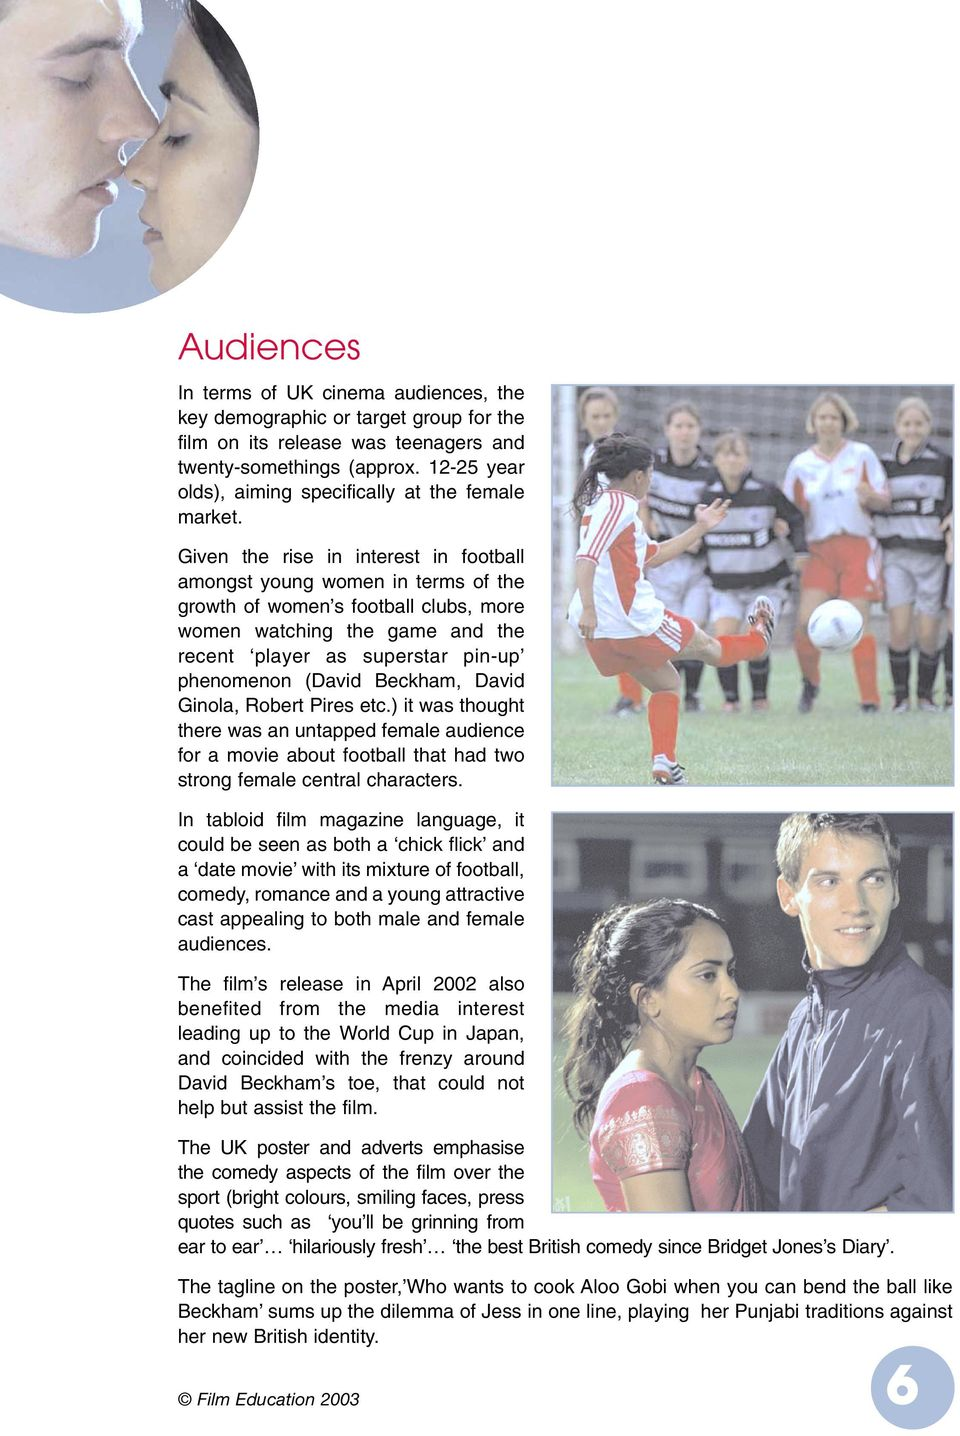 Given the rise in interest in football amongst young women in terms of the growth of women s football clubs, more women watching the game and the recent player as superstar pin-up phenomenon (David